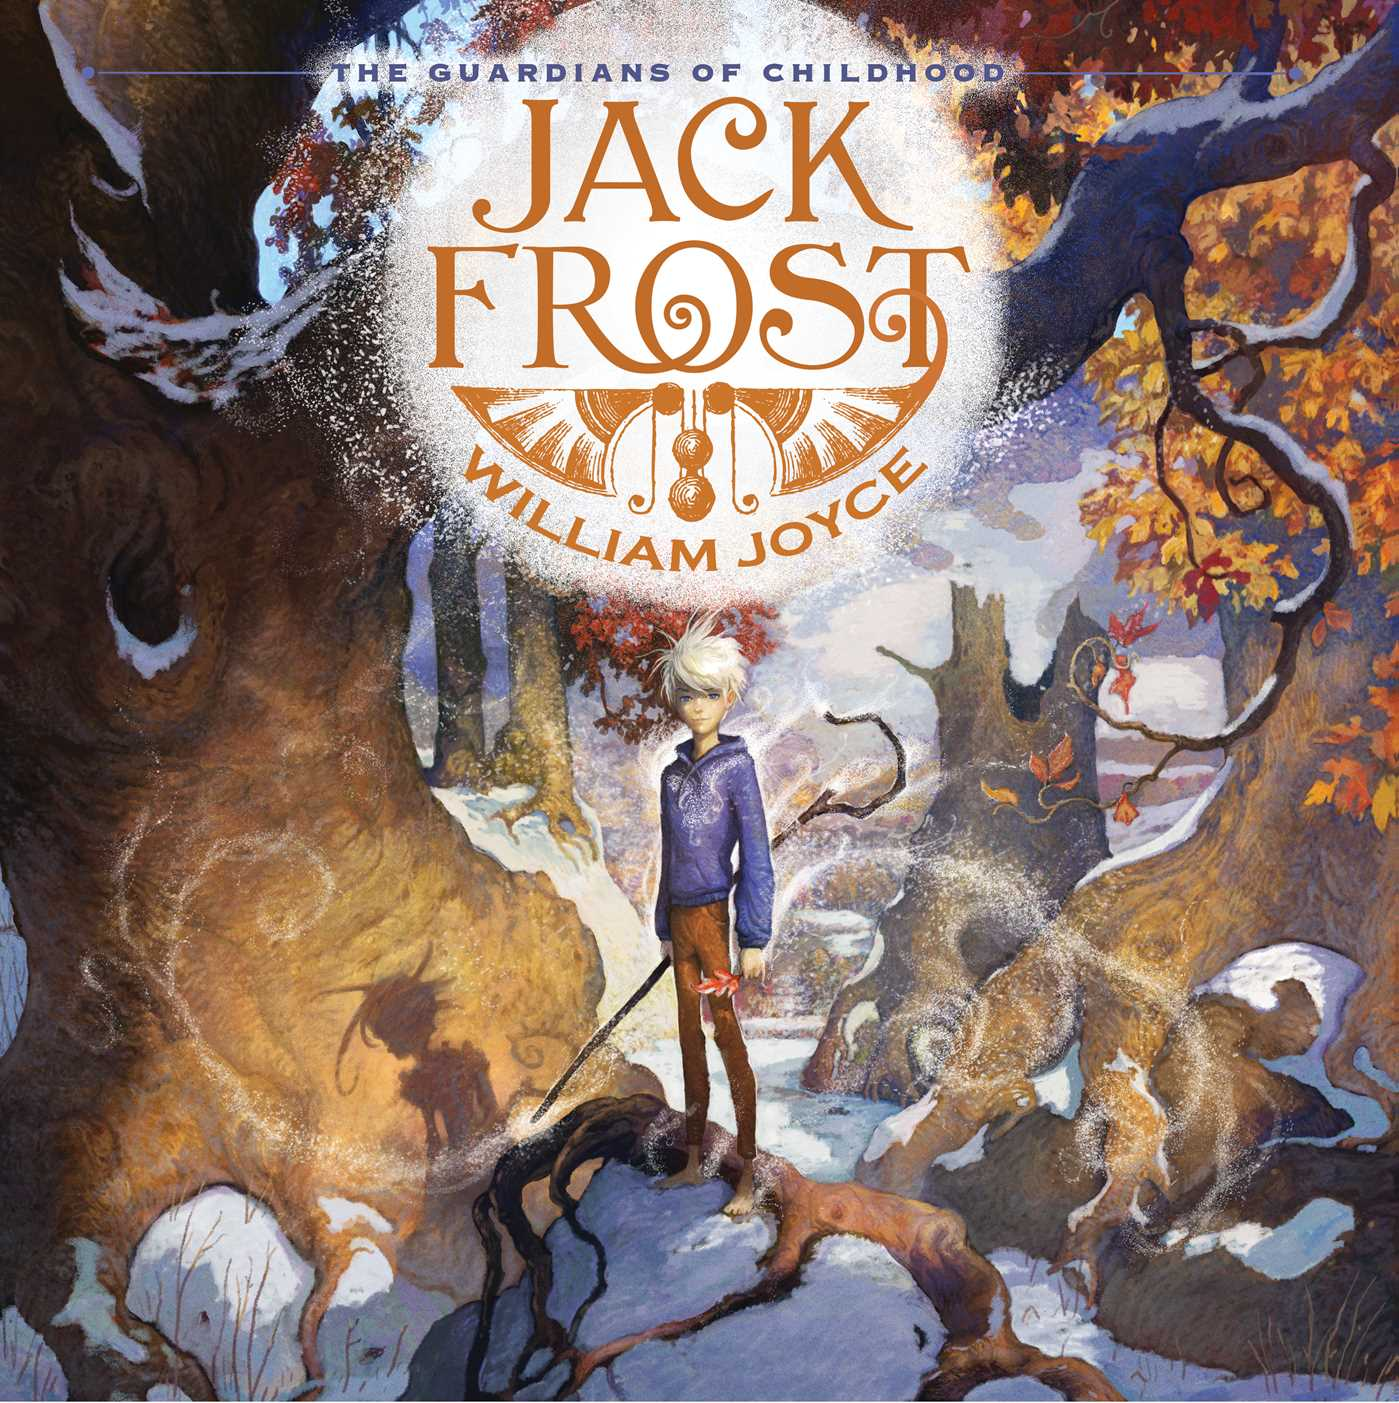 Jack frost 9781442430433 hr